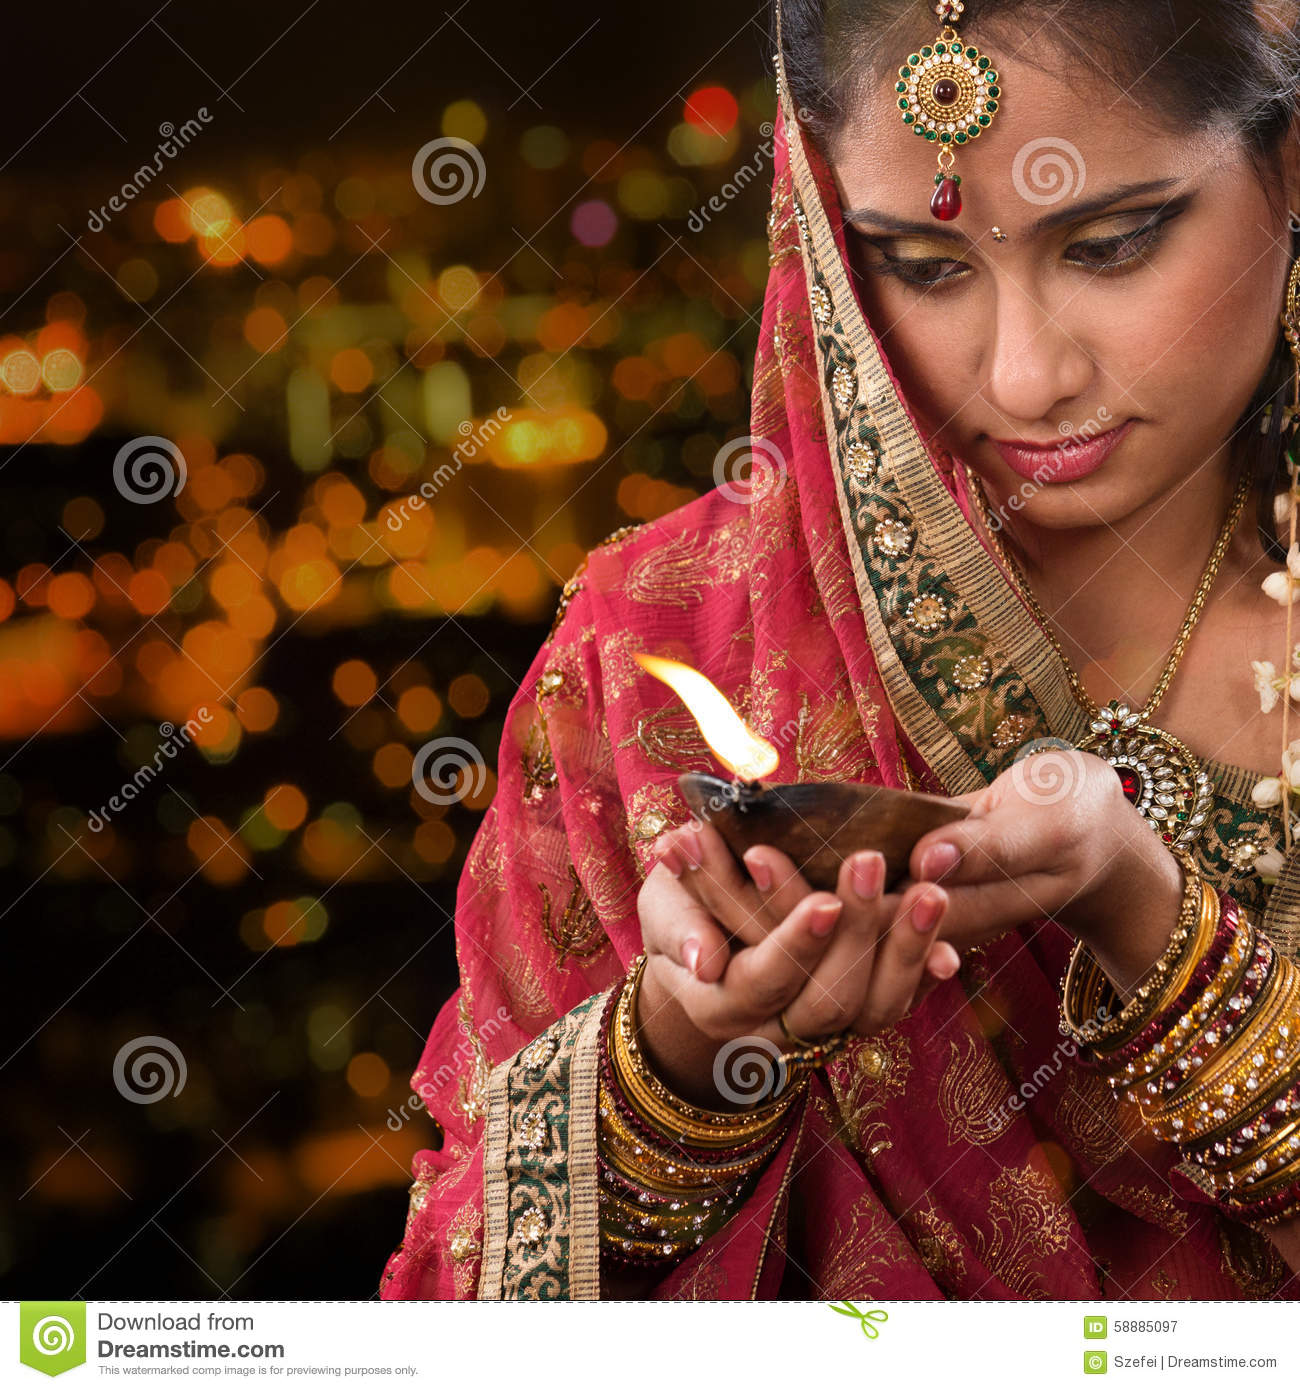 Indian Girl Hands Holding Diwali Oil Lamp Stock Image - Image of ... for Girl Holding Lamp  103wja